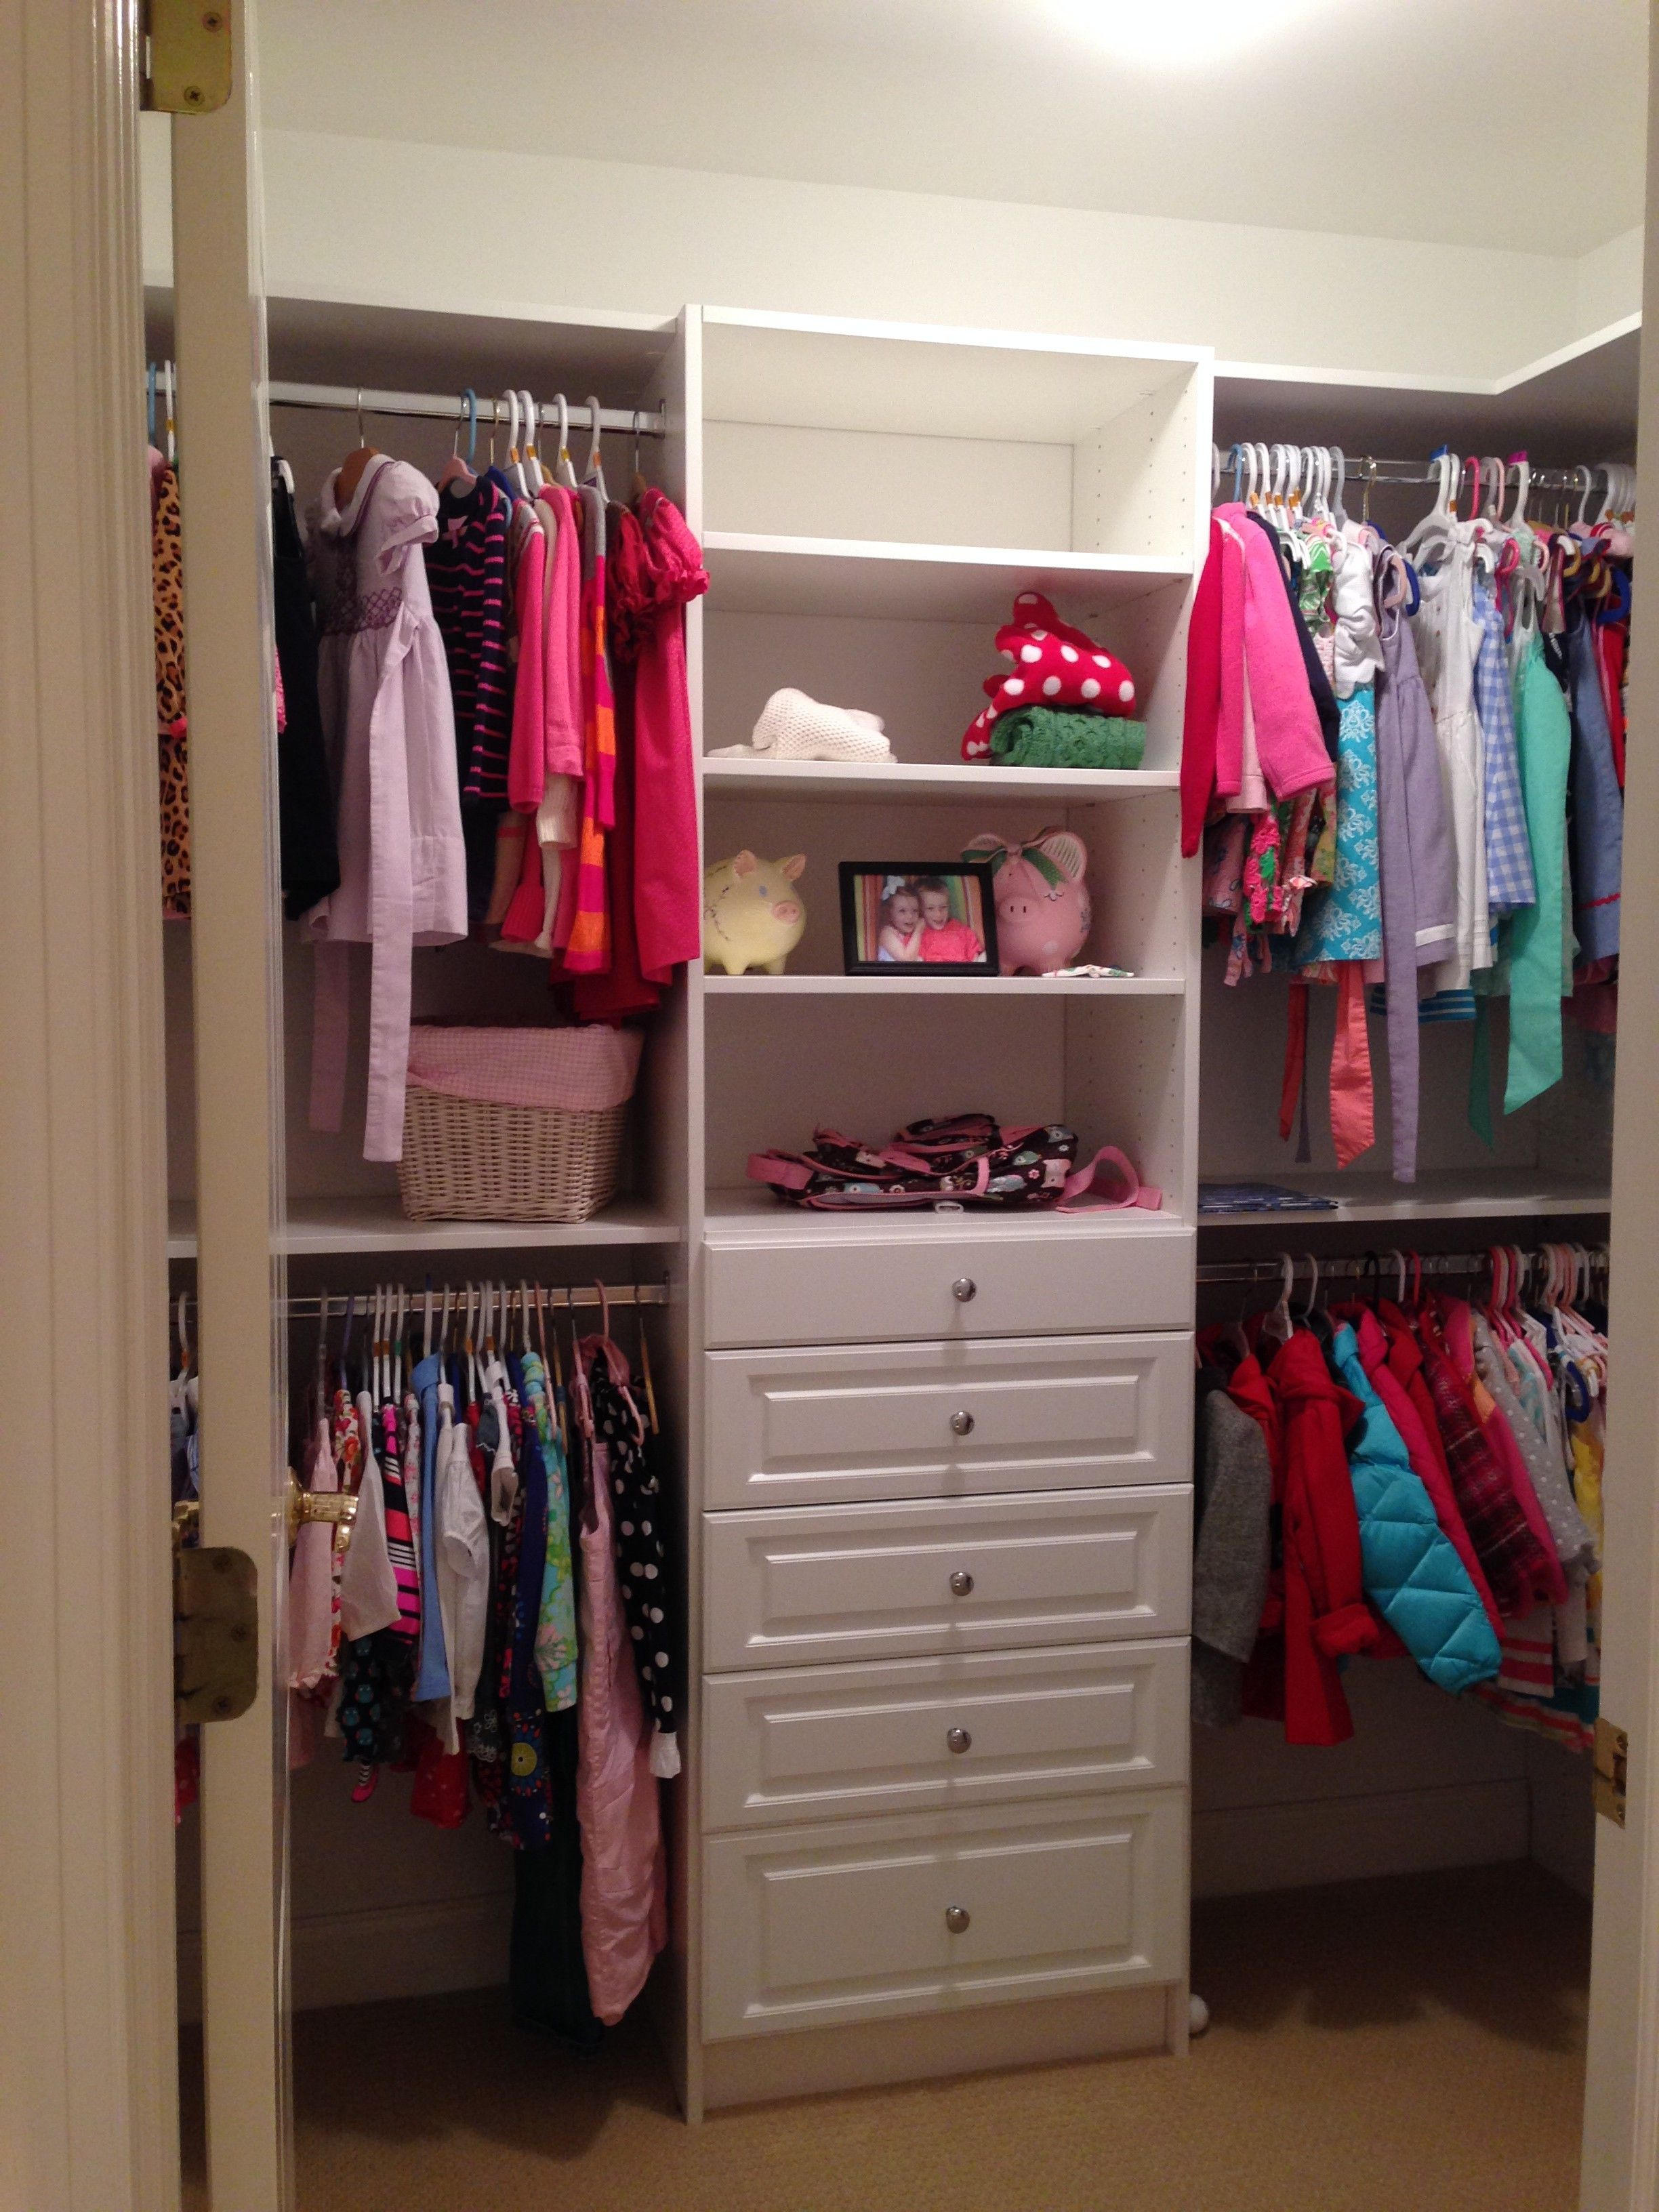 that as simplicity key all of children closet organized these spaces closets the img blog within areas includes have well order you above wardrobe can s kids they and structure organizing to this yes is